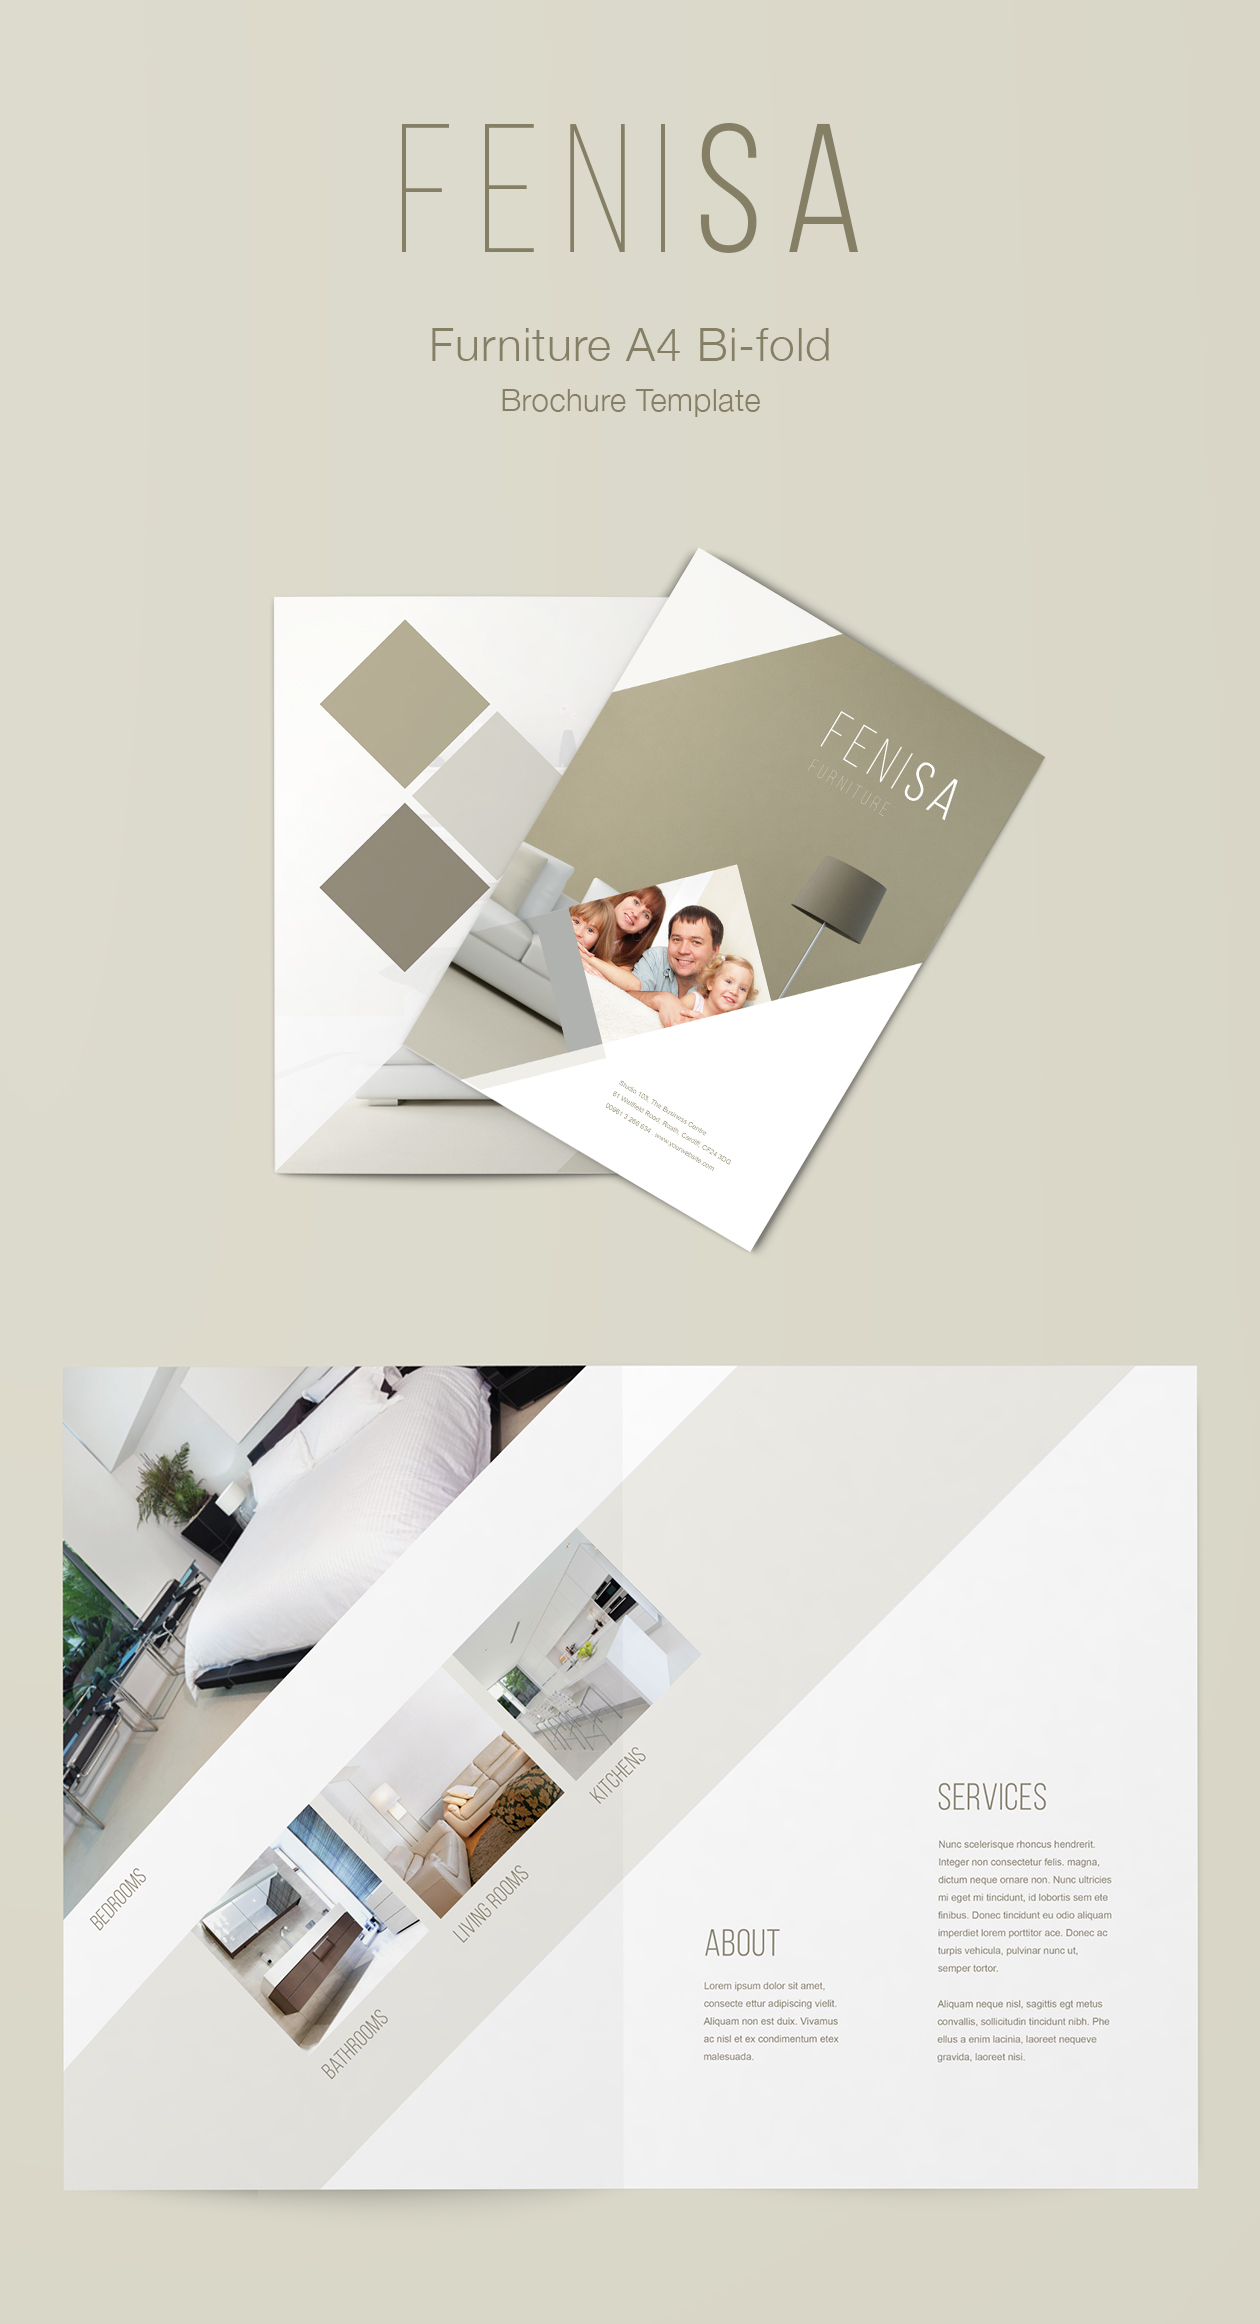 Furniture Brochure Template A4 Bifold